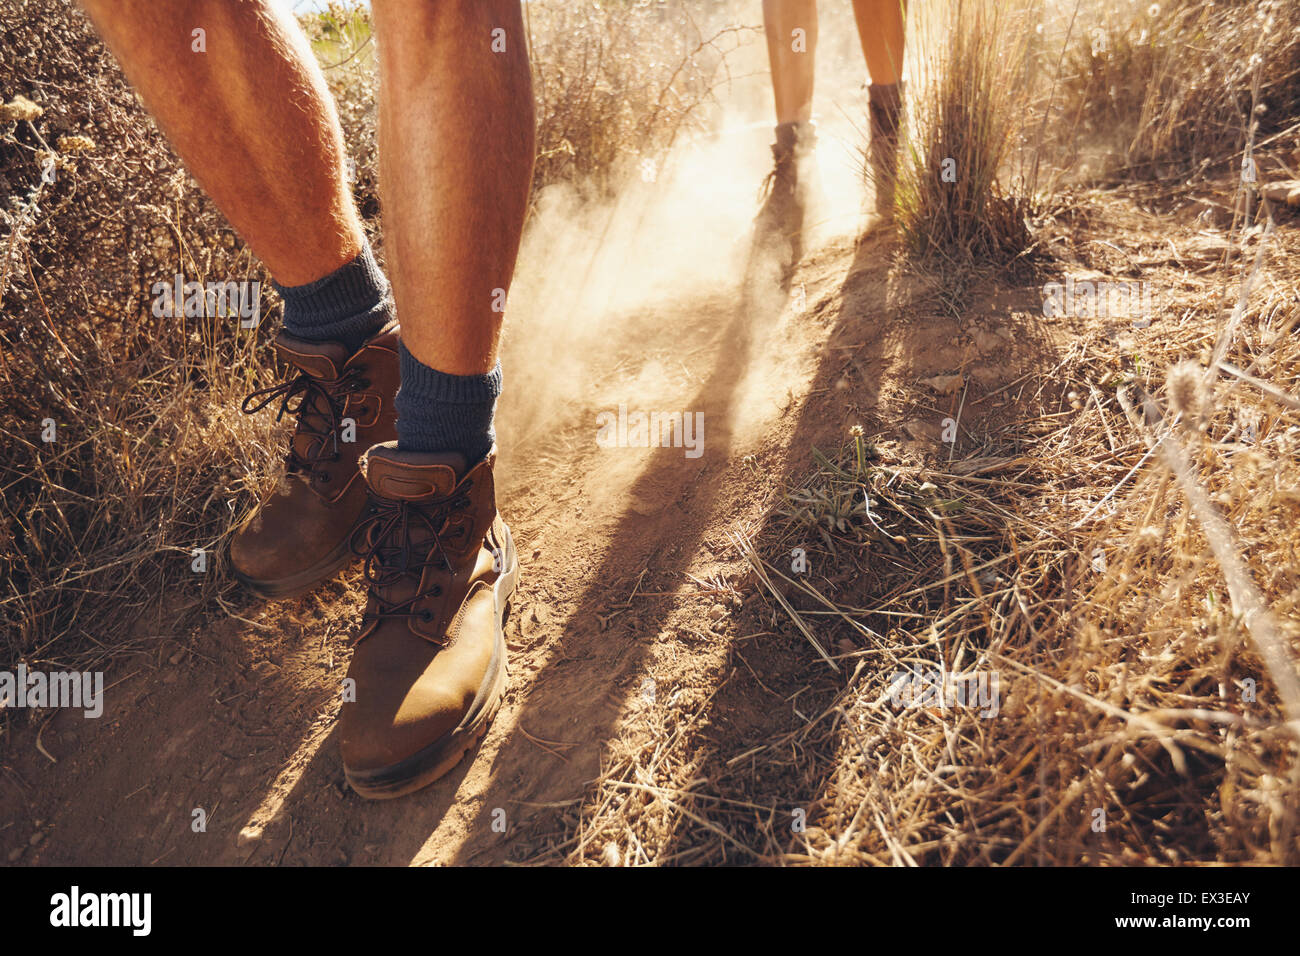 Low section shot of two young people walking on dirt trail, focus on men's hiking boots. Couple of hikers on - Stock Image